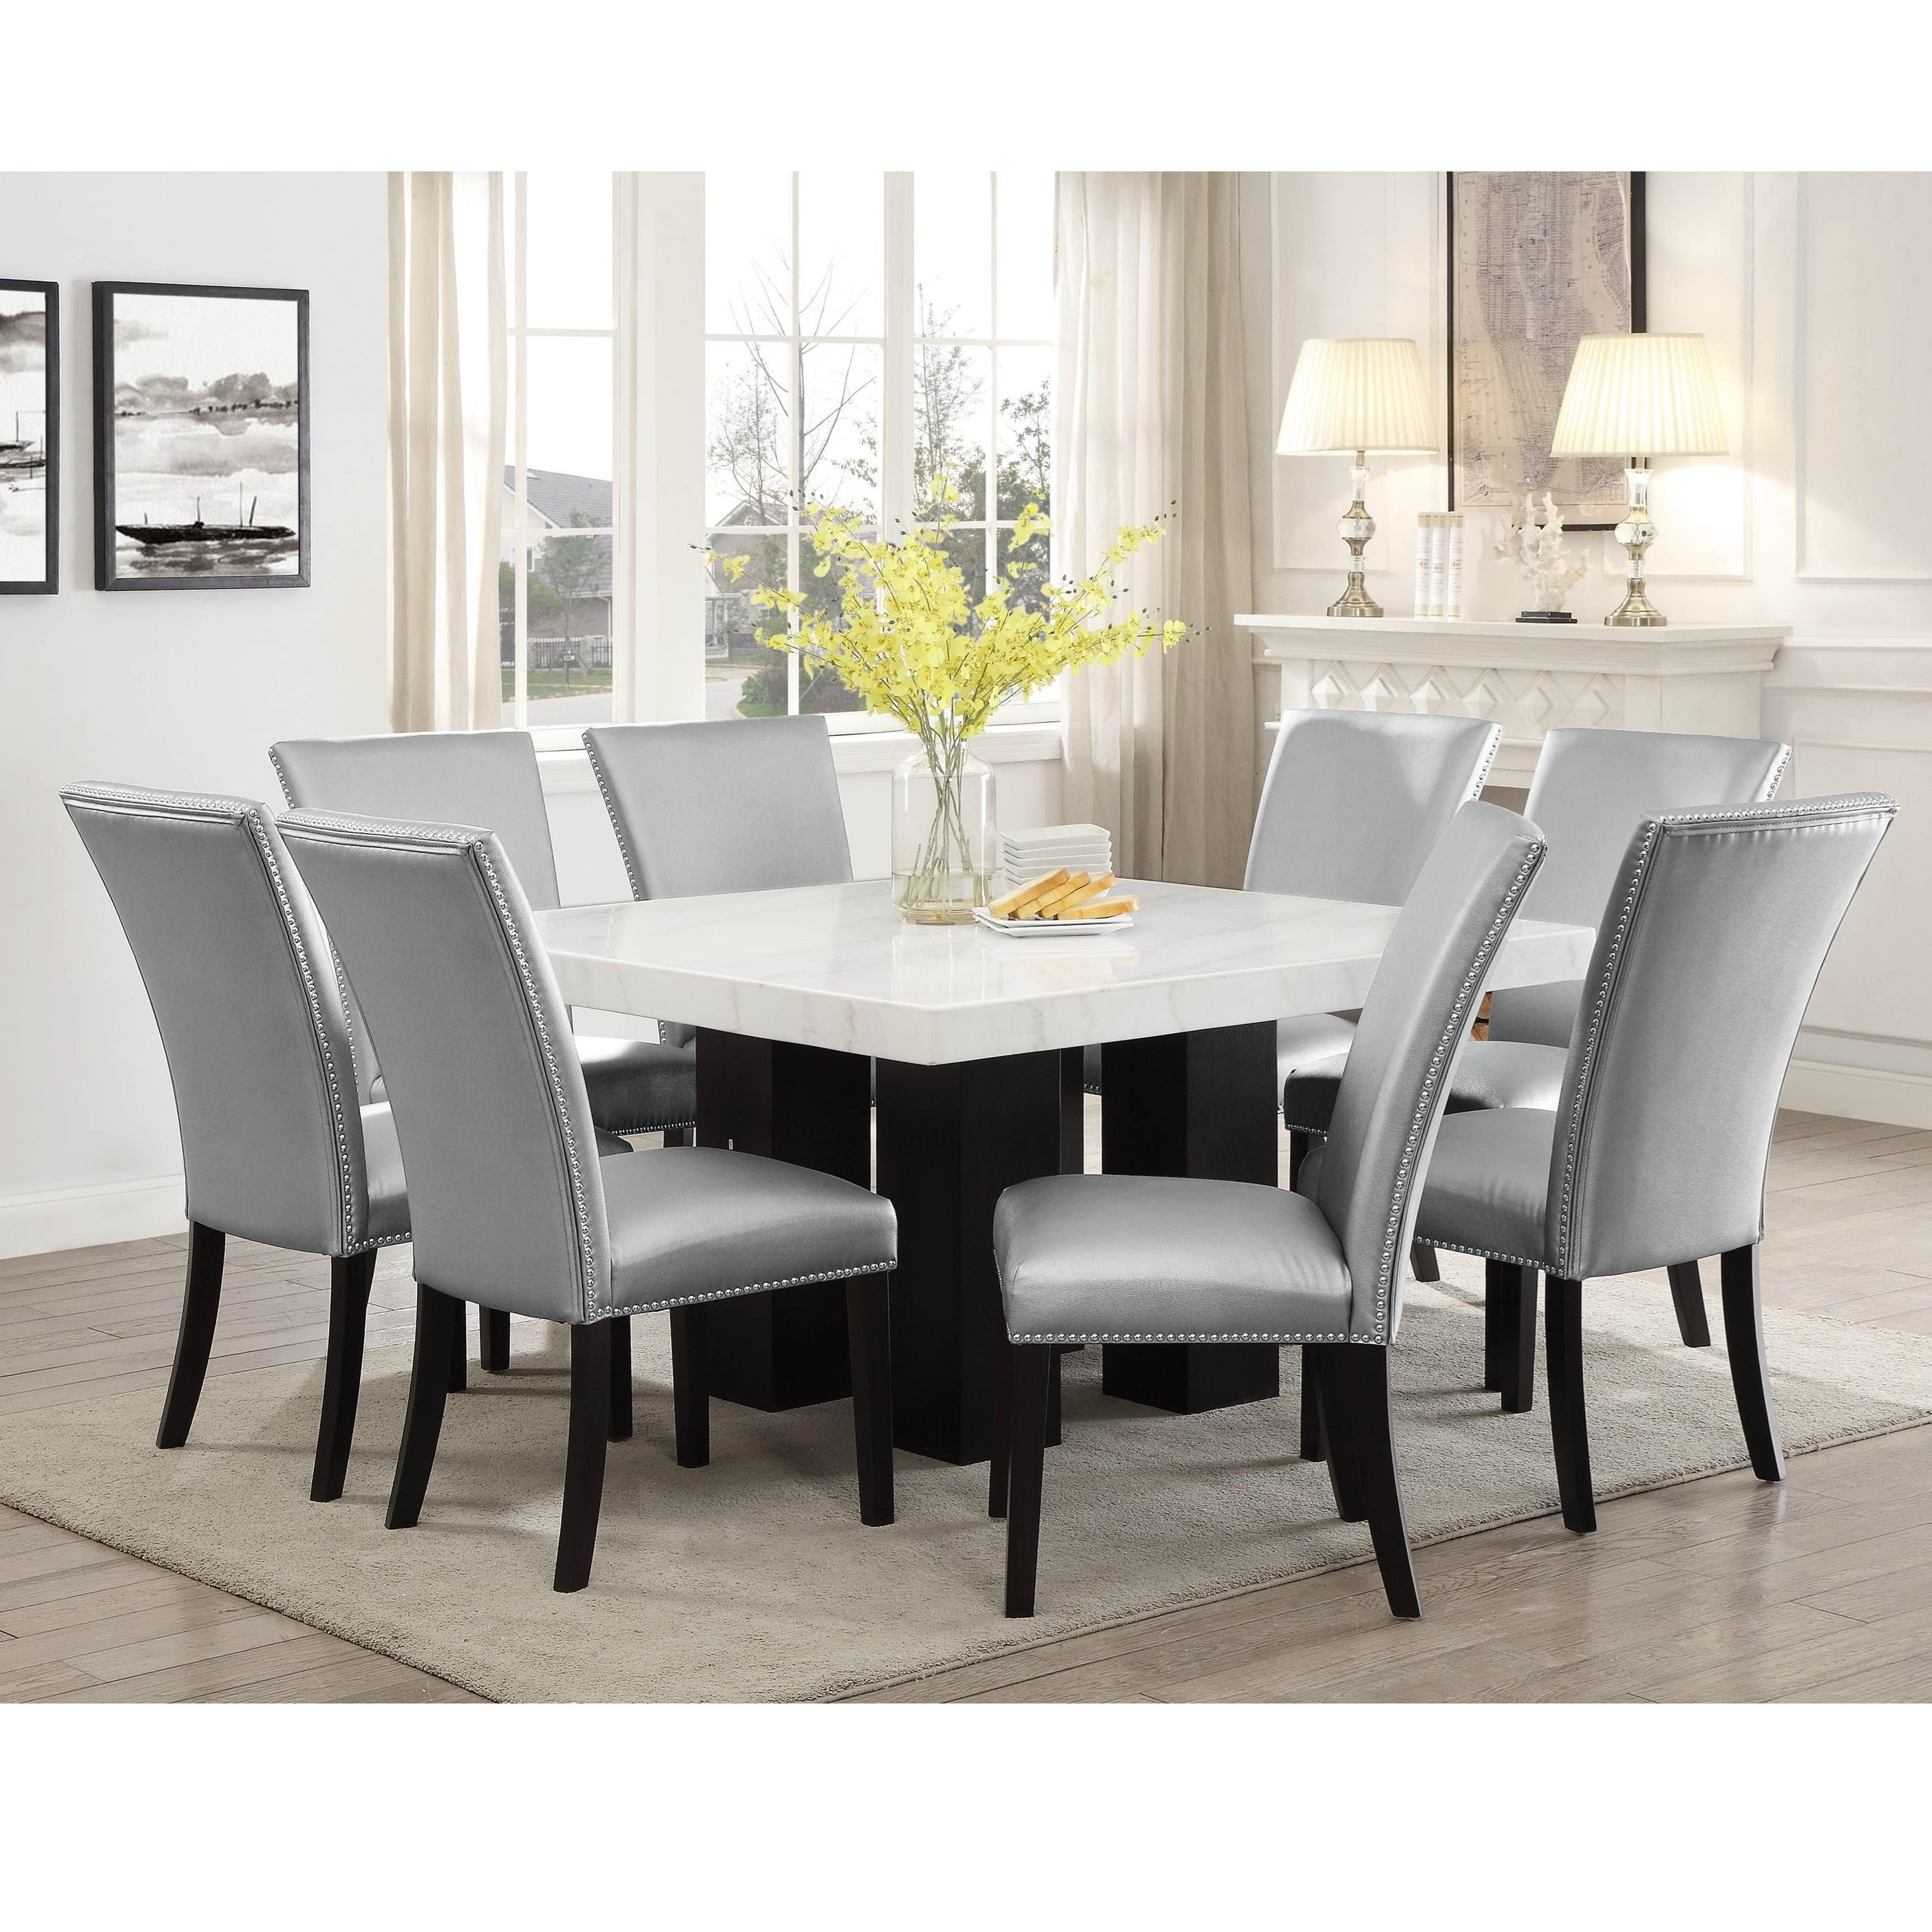 Camila 9 Piece Dining Set by Steve Silver at Van Hill Furniture